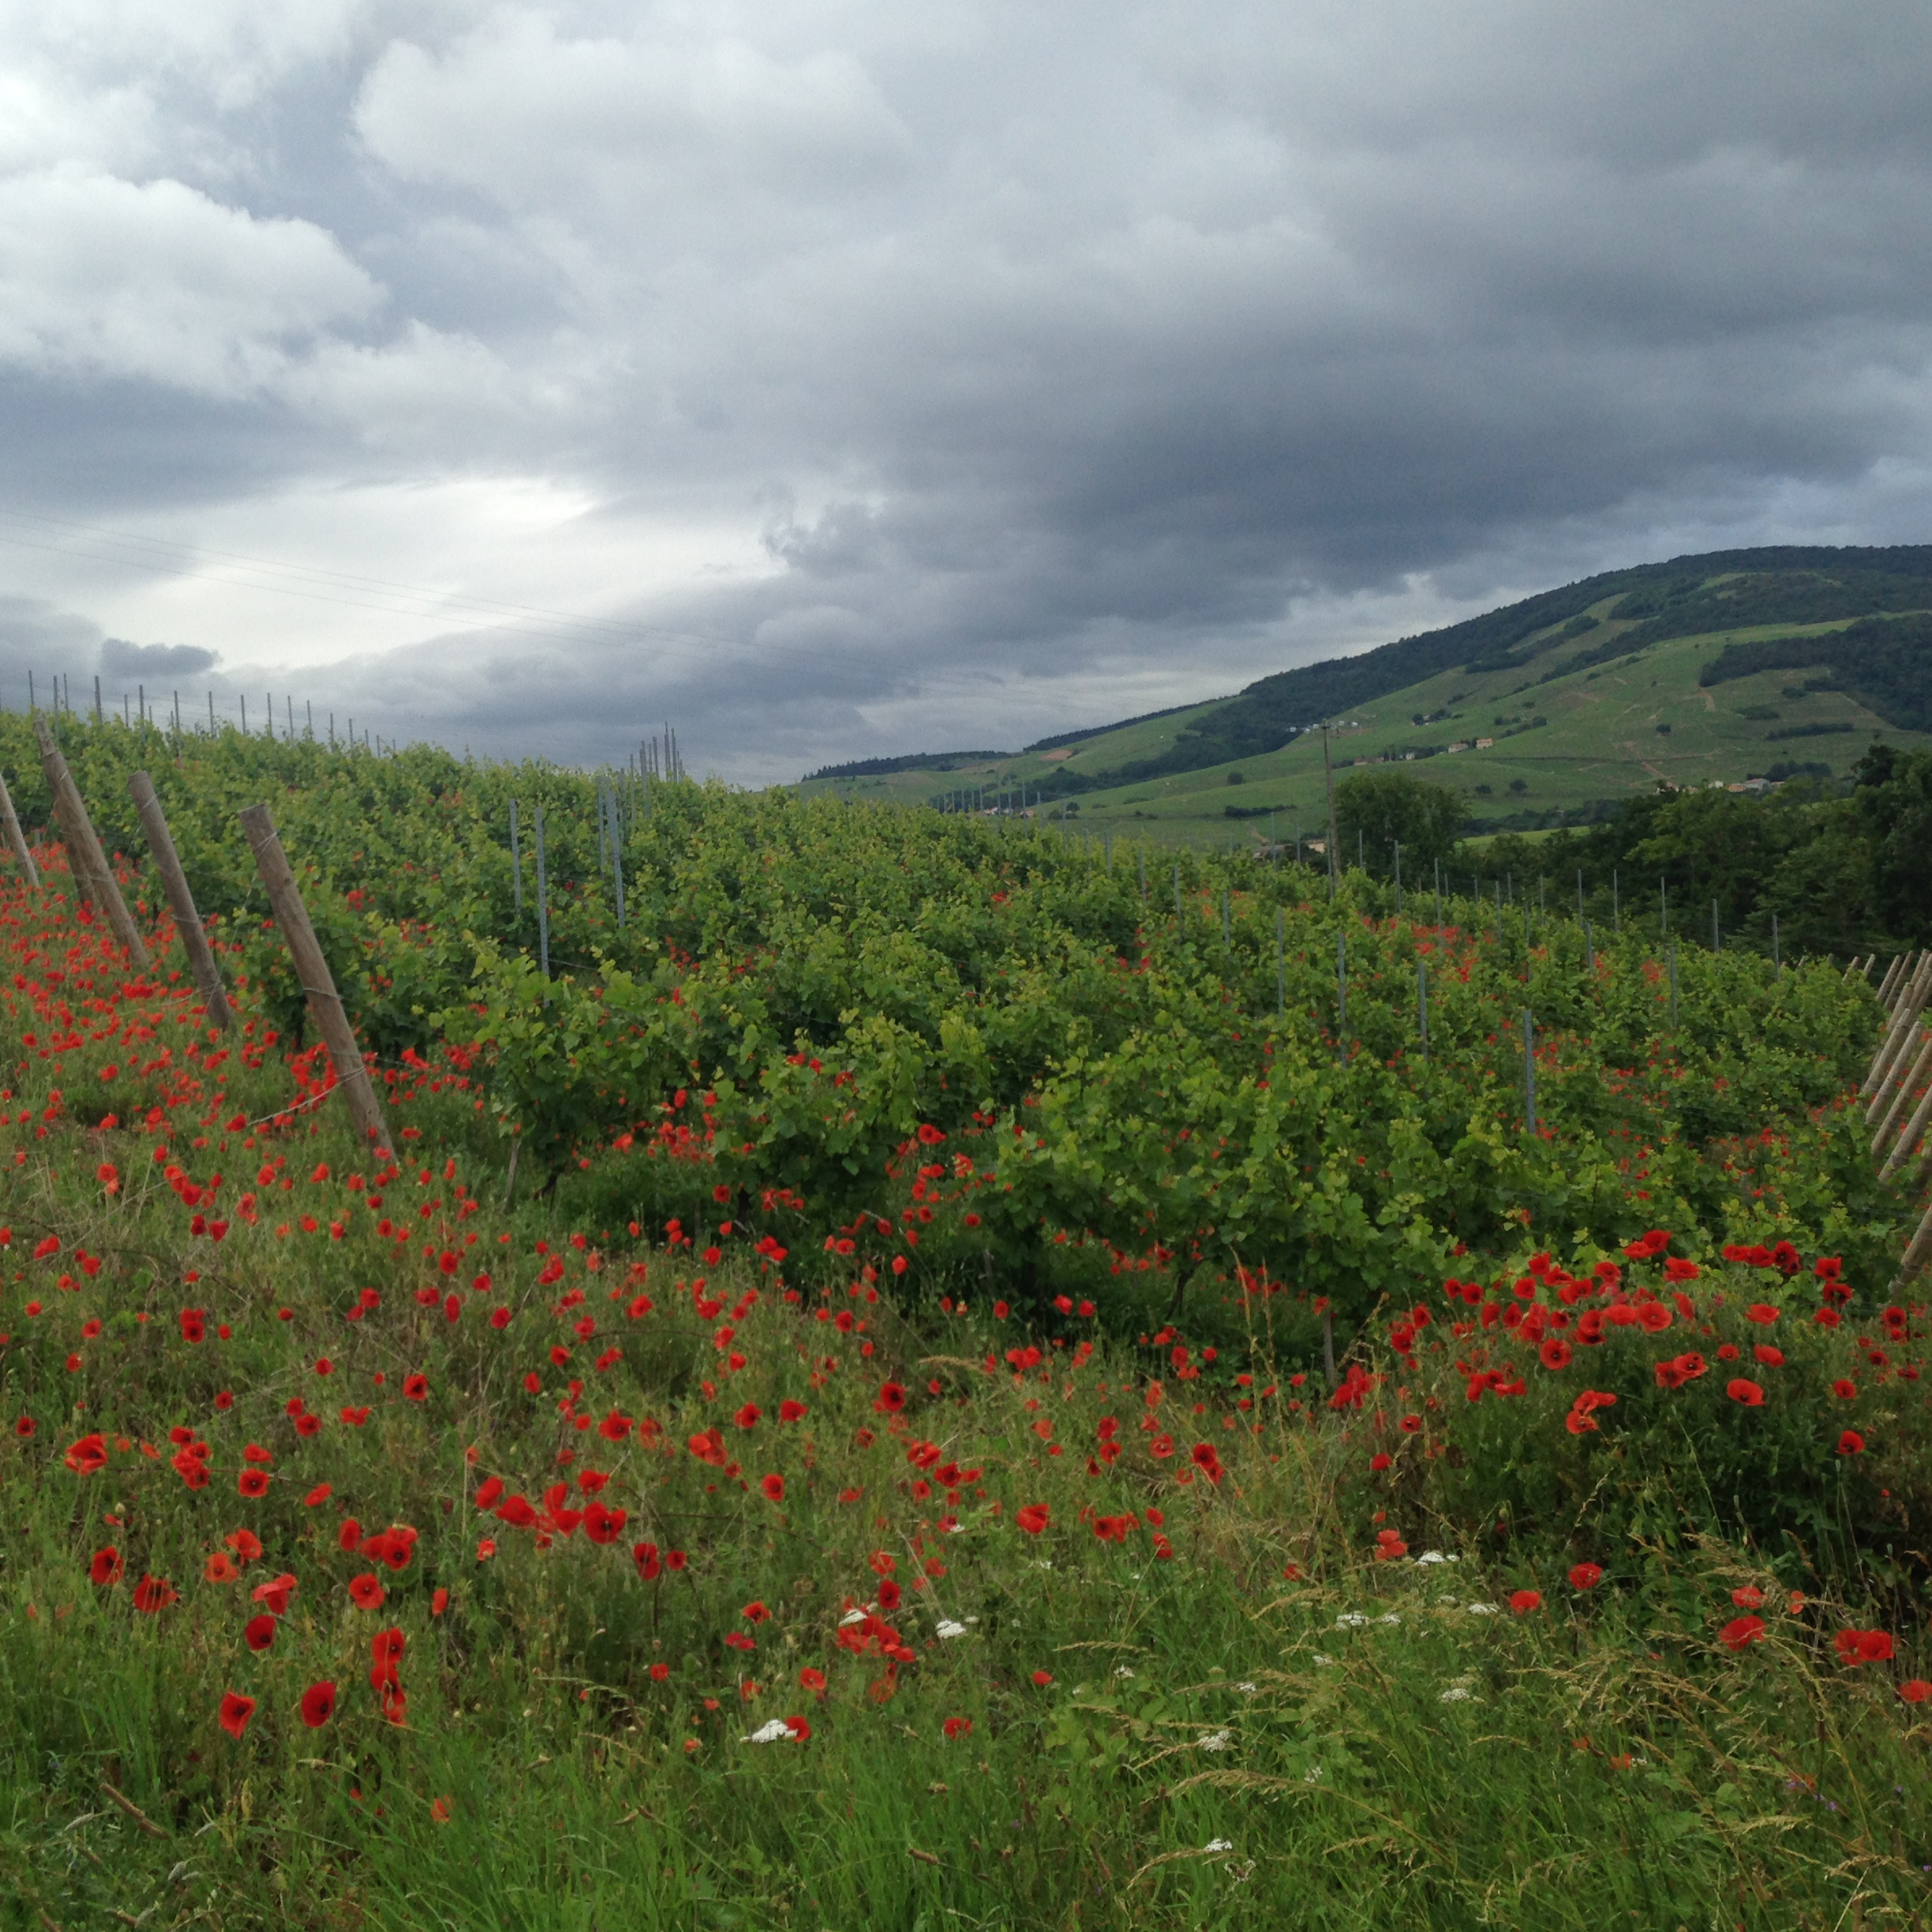 flowers-vineyards.jpg